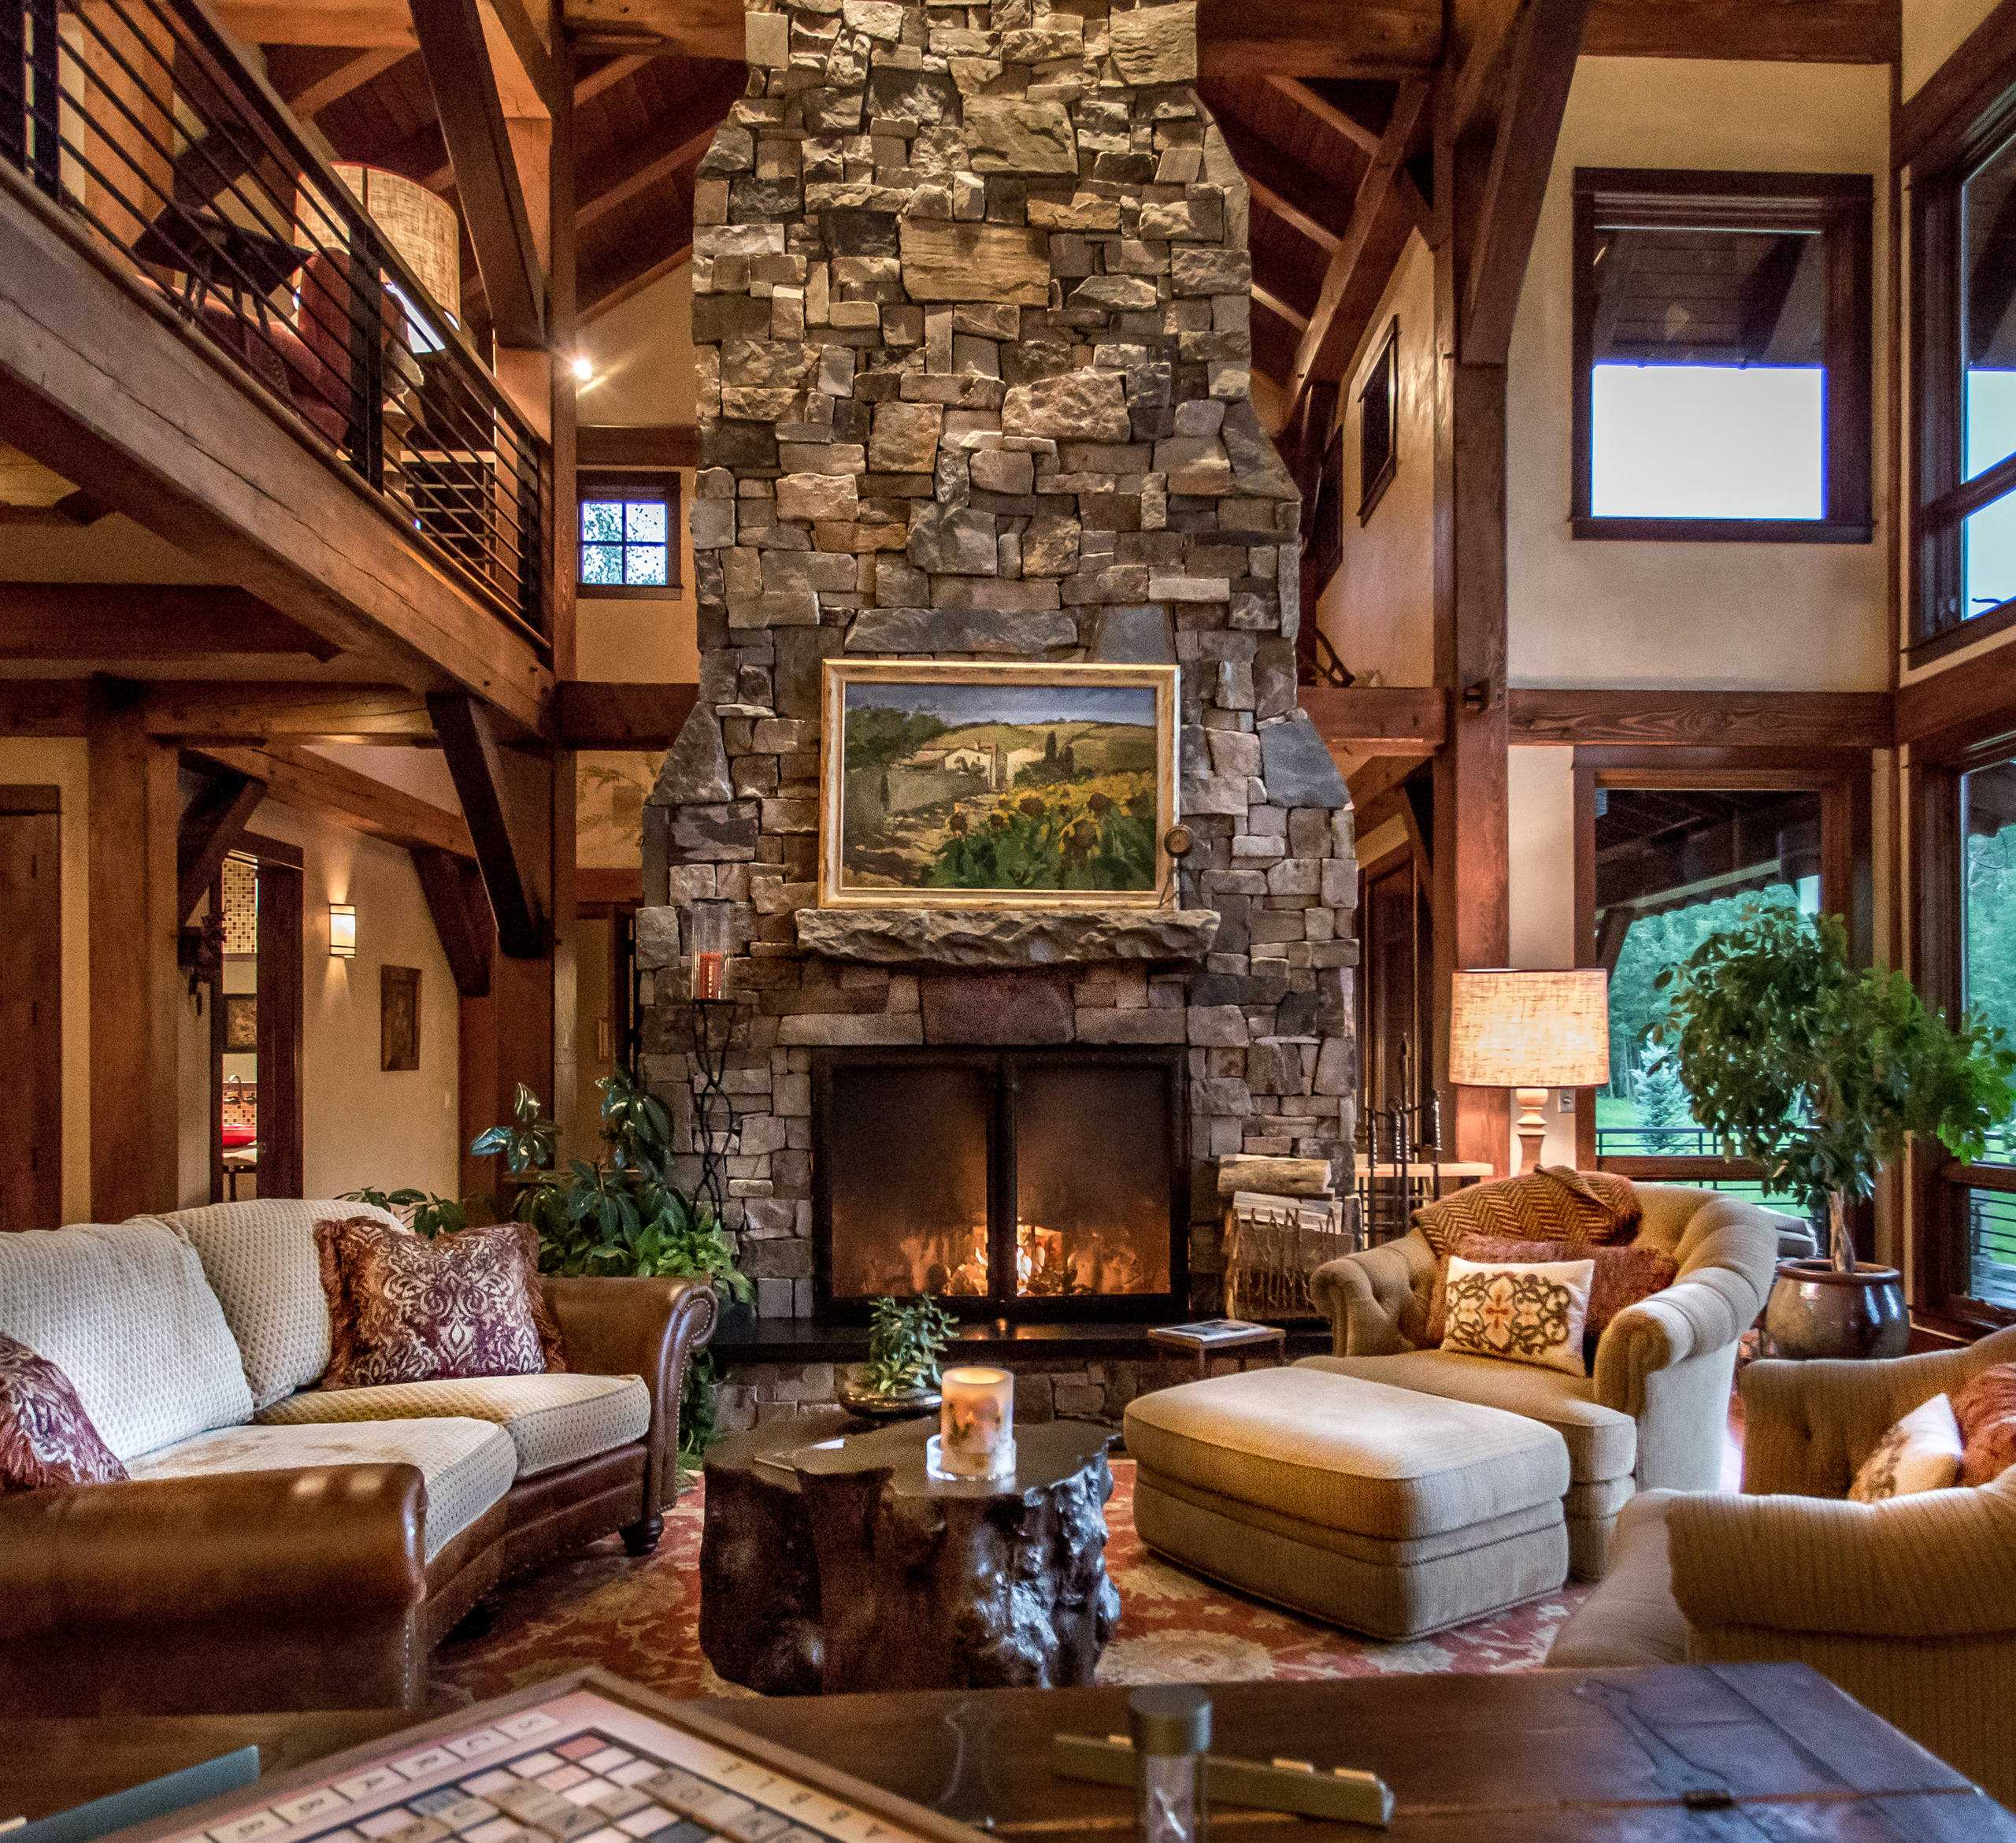 Pics Of Living Rooms: 16 Sophisticated Rustic Living Room Designs You Won't Turn